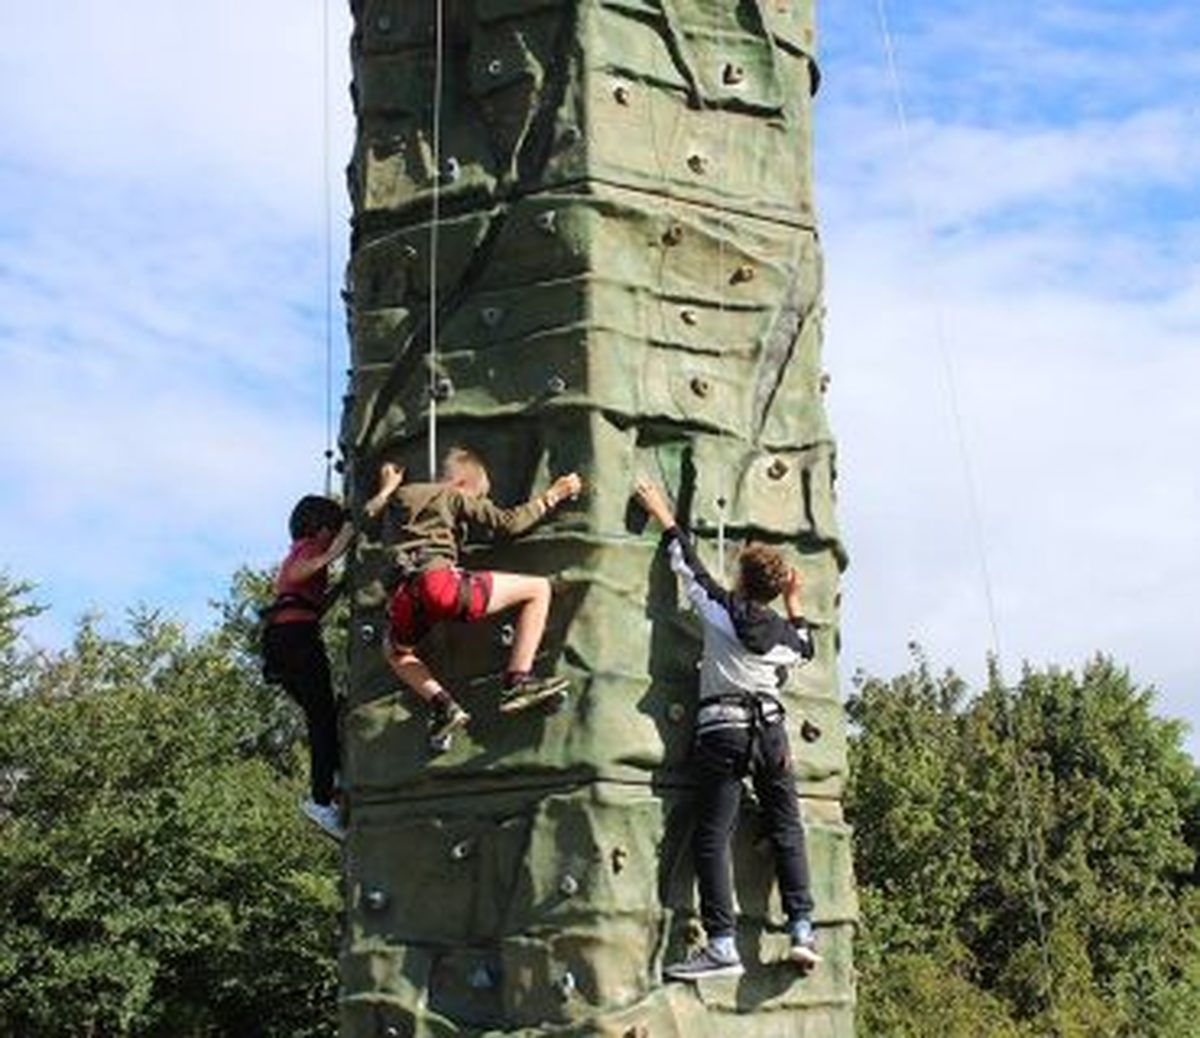 Climbing Wall   EDGE Outdoor Activities   Lets Go Out